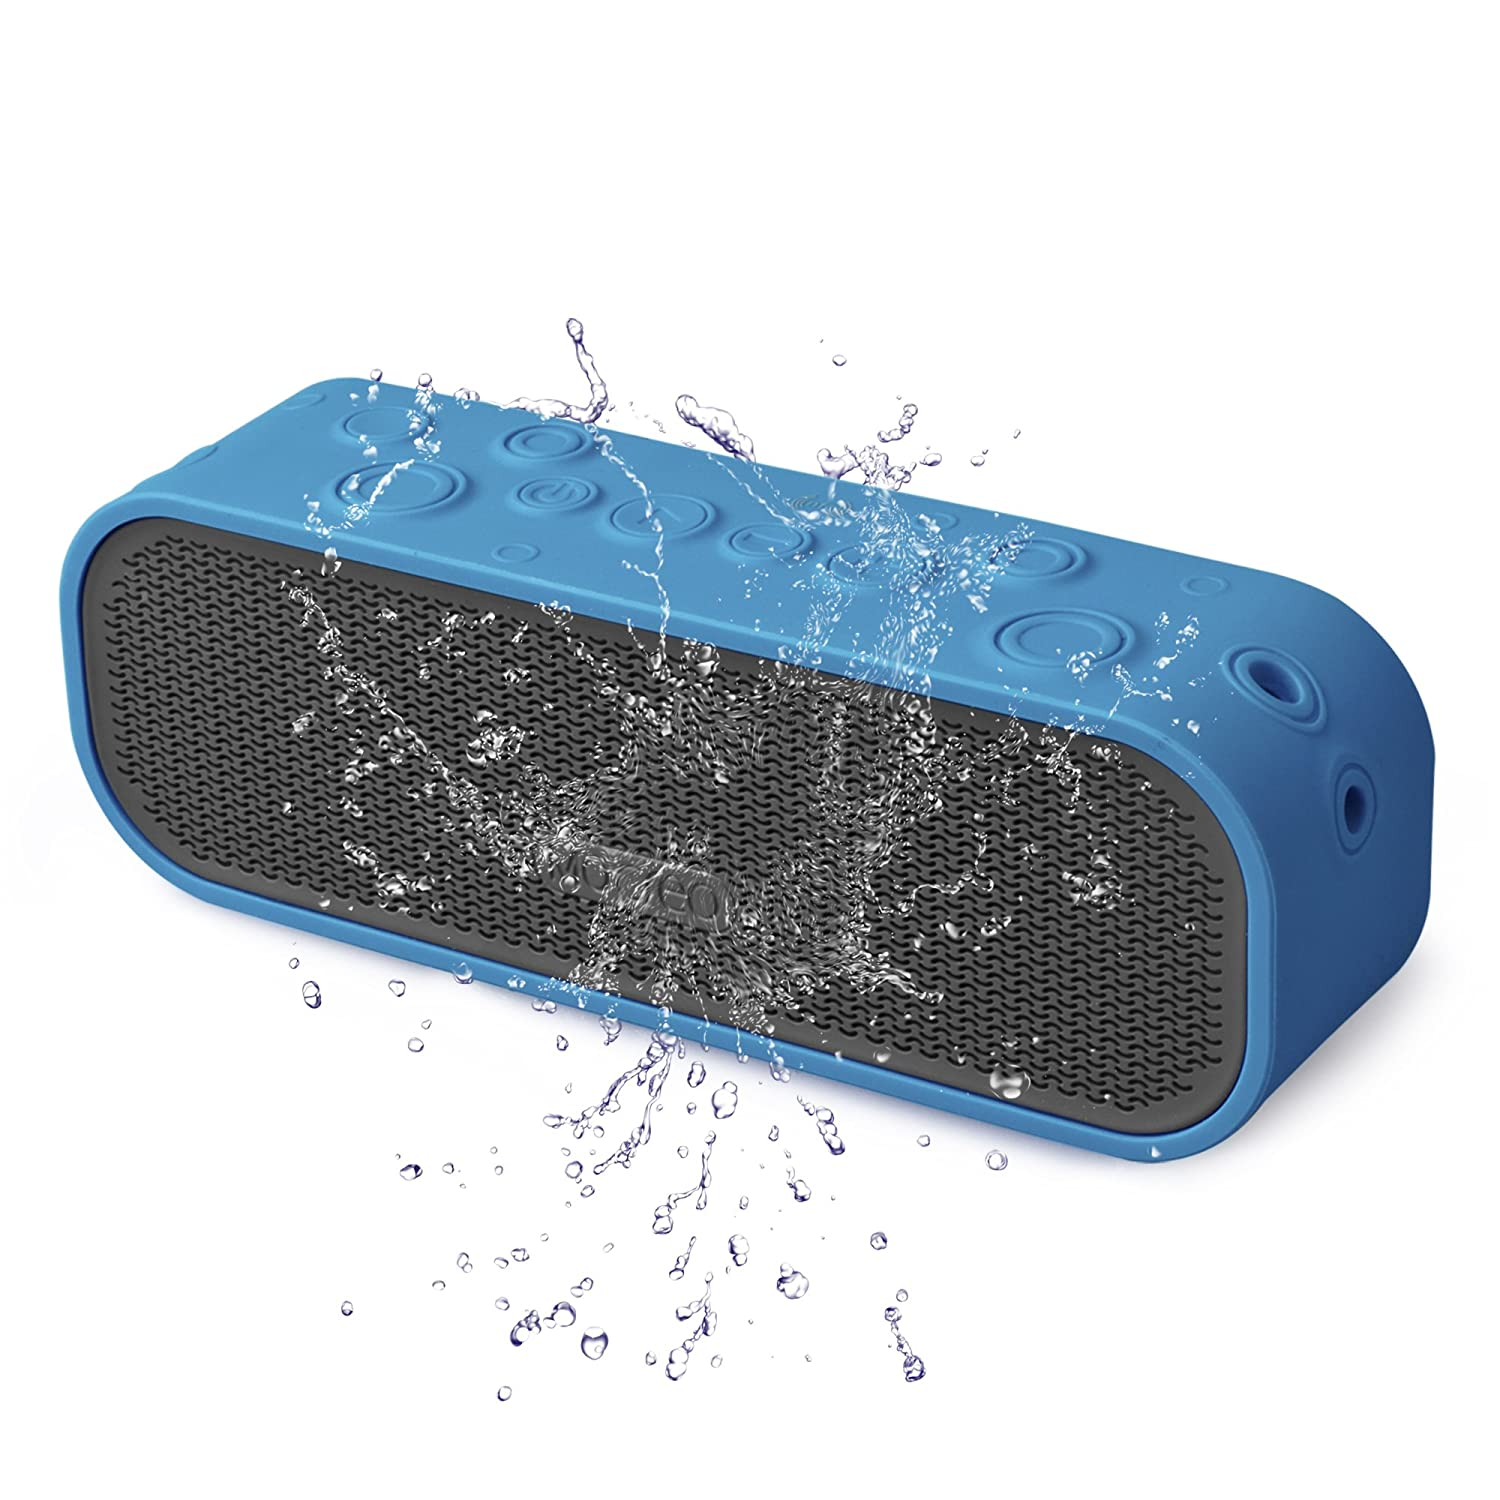 MOCREO® Water-resistant NFC Portable Bluetooth Speaker Rugged Splash Proof + Hands-free Speakerphone w/ Built-in Mic + Dual Stereo Speakers + TF Card Slot Indoor/Outdoors Waterproof Speaker IPX5 + Latest Bluetooth 4.0 W/ NFC Compatible w/ Apple iPhone 6 portable usb2 0 bluetooth v2 1 edr stereo mini speaker w hand free tf funcrtion blue black